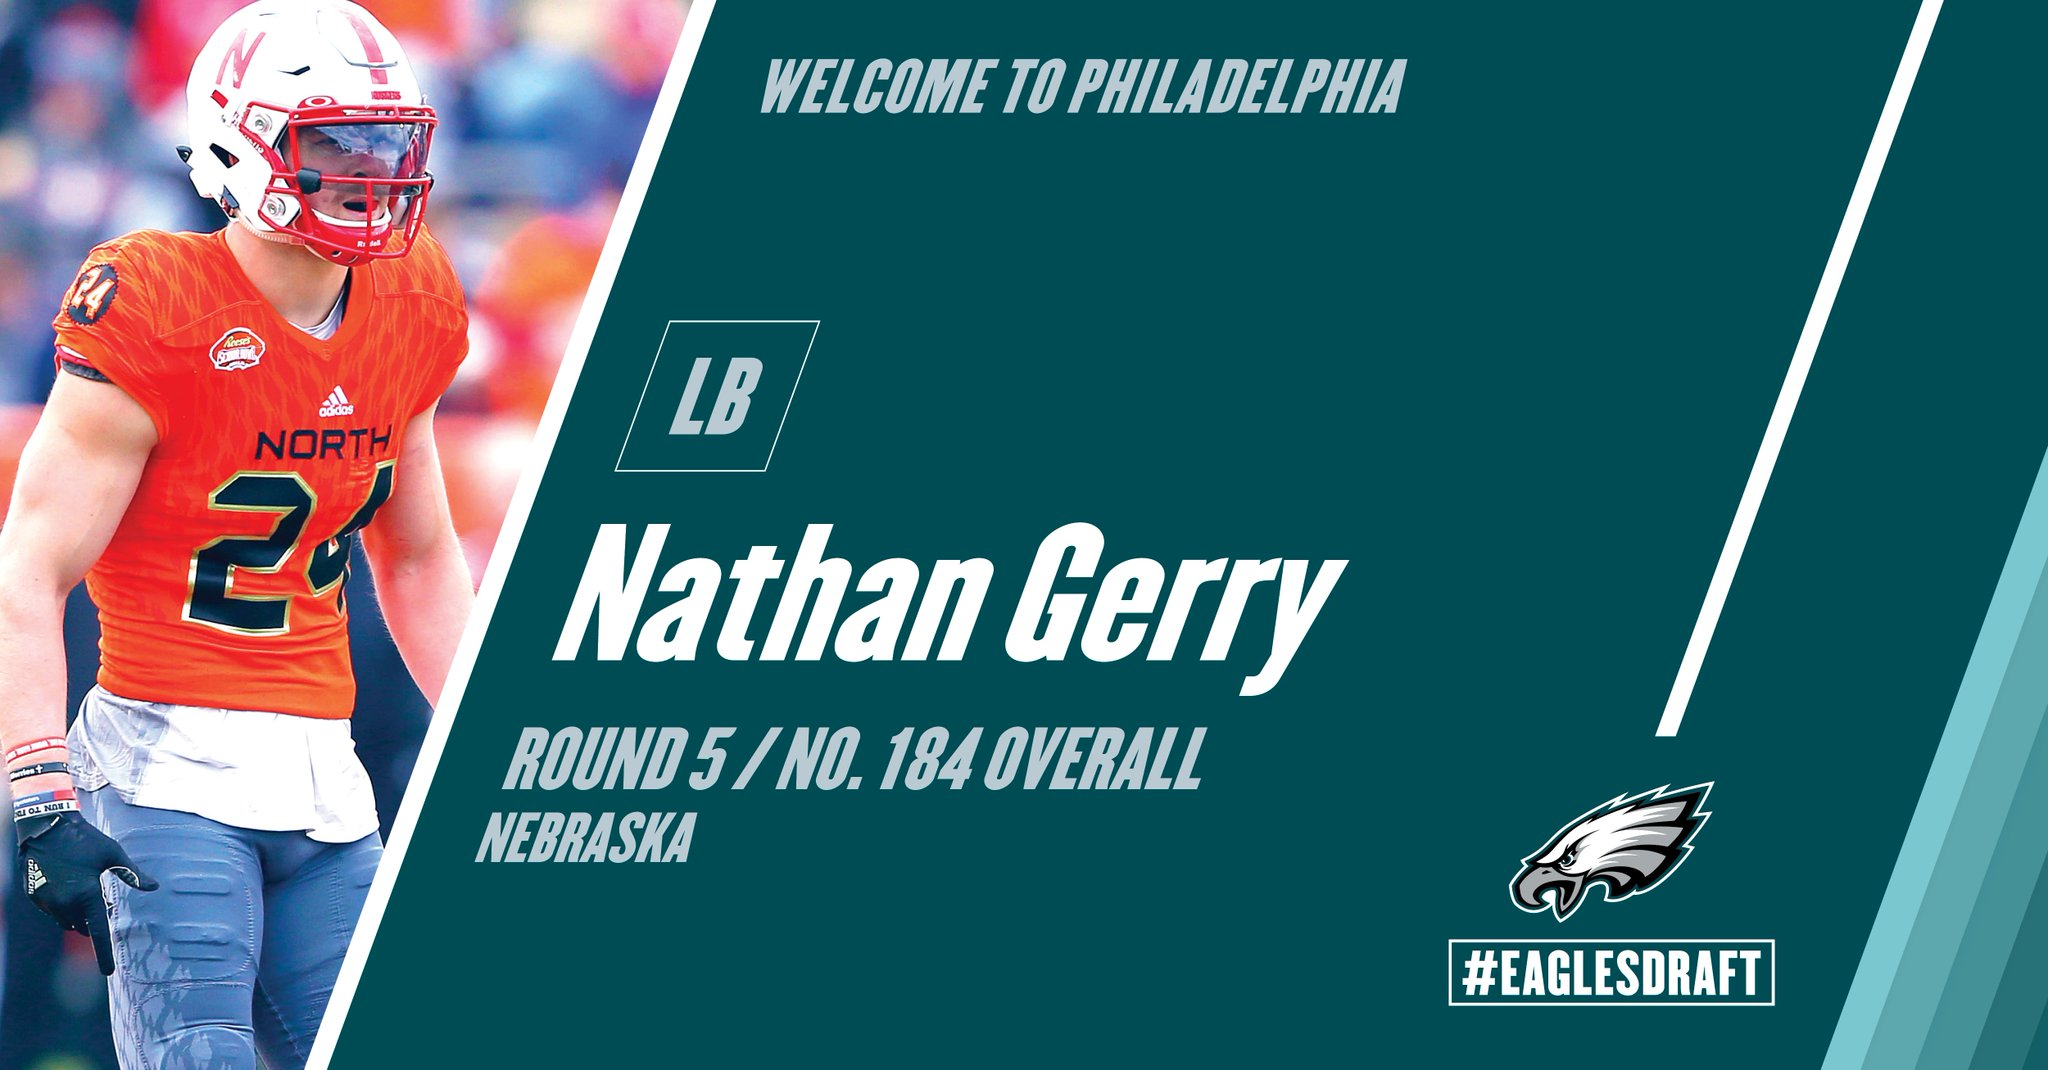 With the 184th pick in the 2017 #NFLDraft, the #Eagles select LB Nathan Gerry from Nebraska. #FlyEaglesFly https://t.co/gMXvPiFn6A